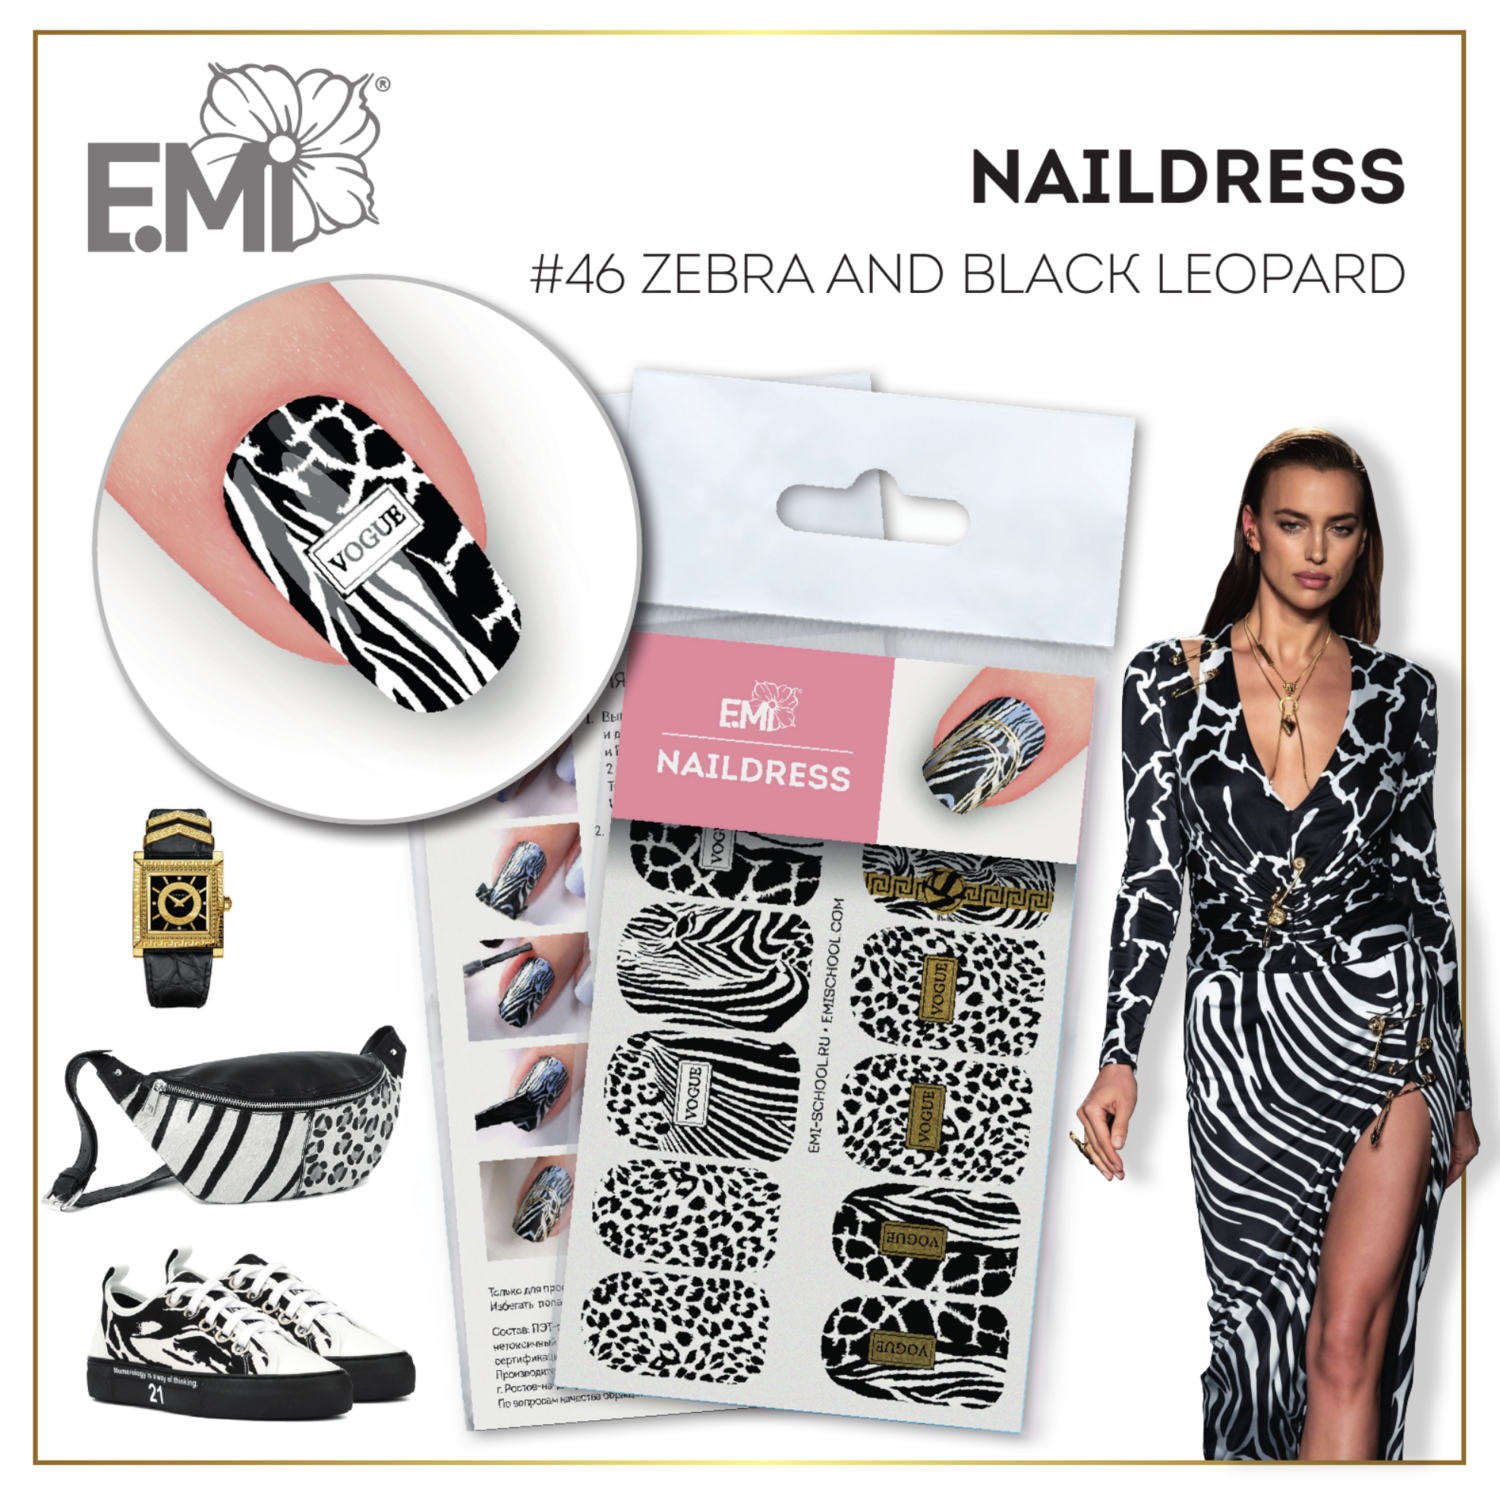 Naildress Slider Design #46 Zebra and Black Leopard